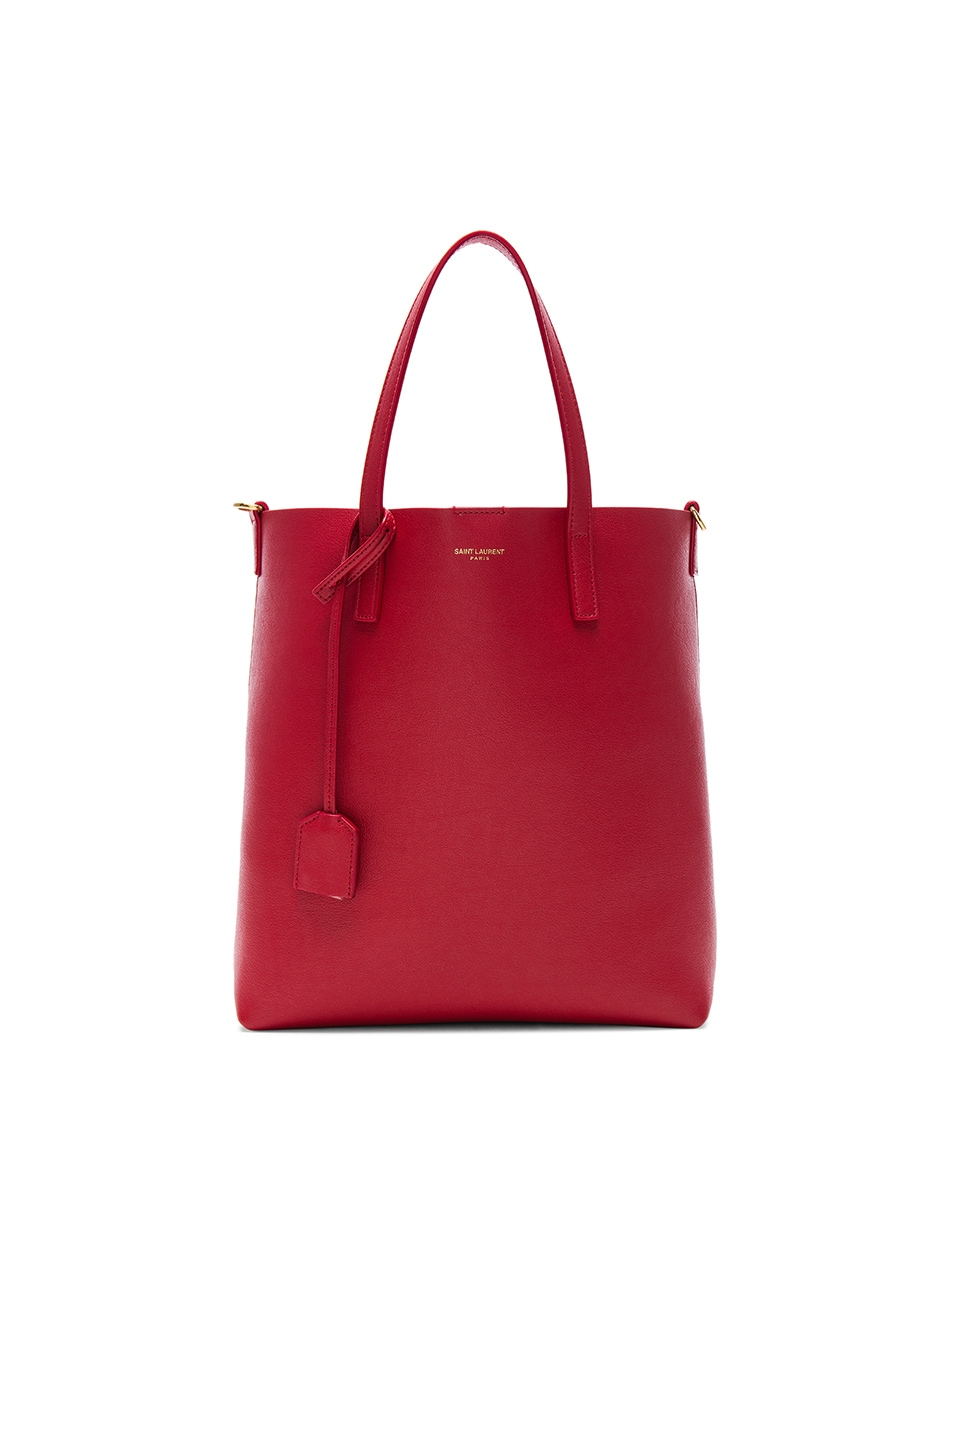 Toy Leather Tote Bag With Shoulder Strap in Red